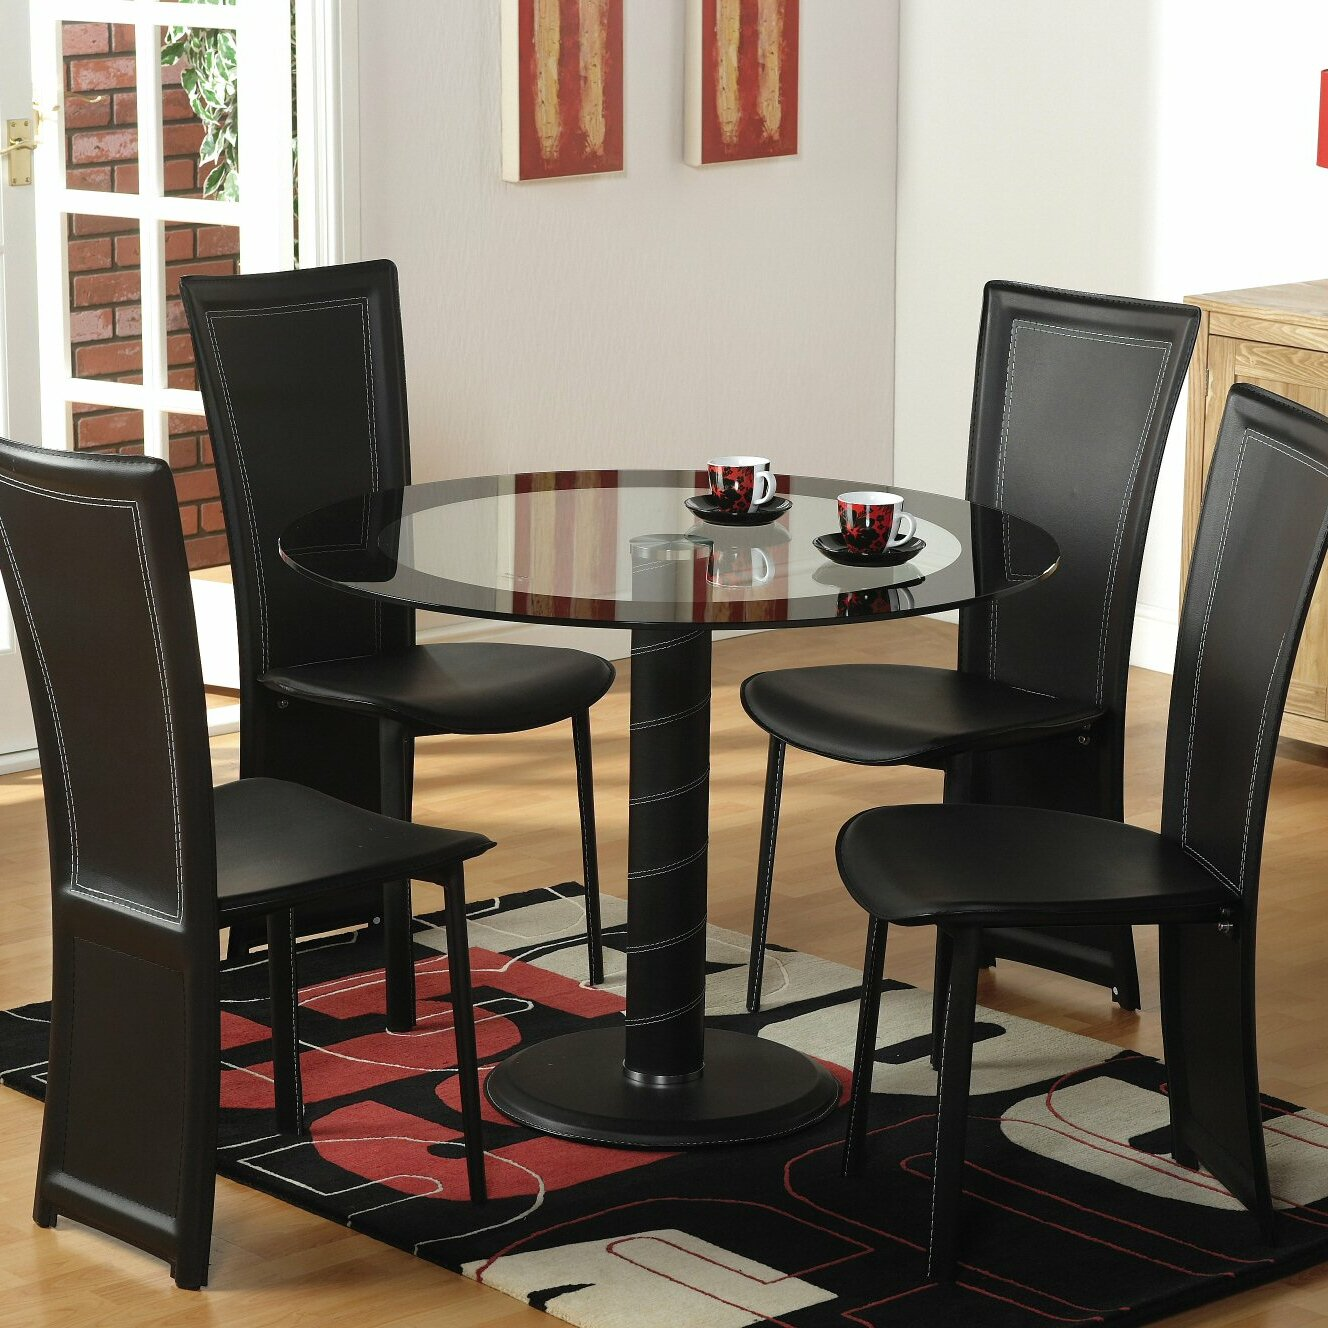 Home Haus Beane Dining Table And 4 Chairs Reviews Wayfair Uk